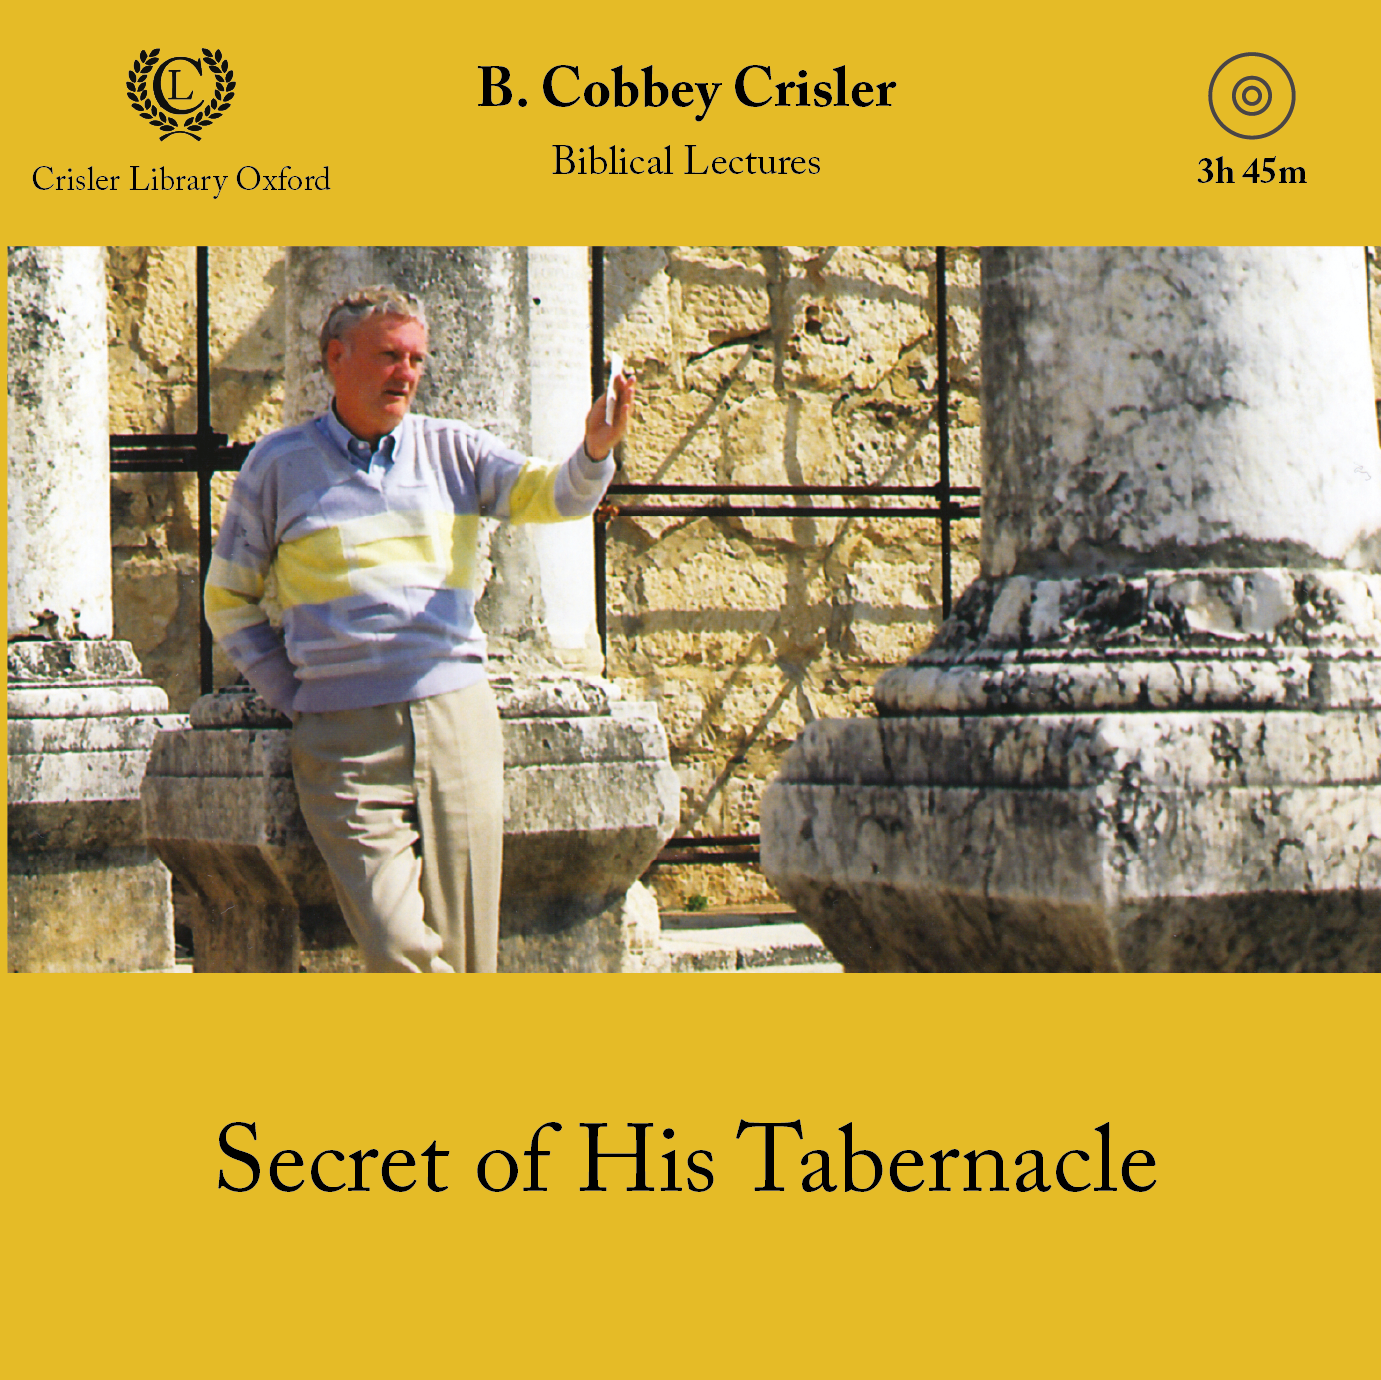 Secret of His Tabernacle